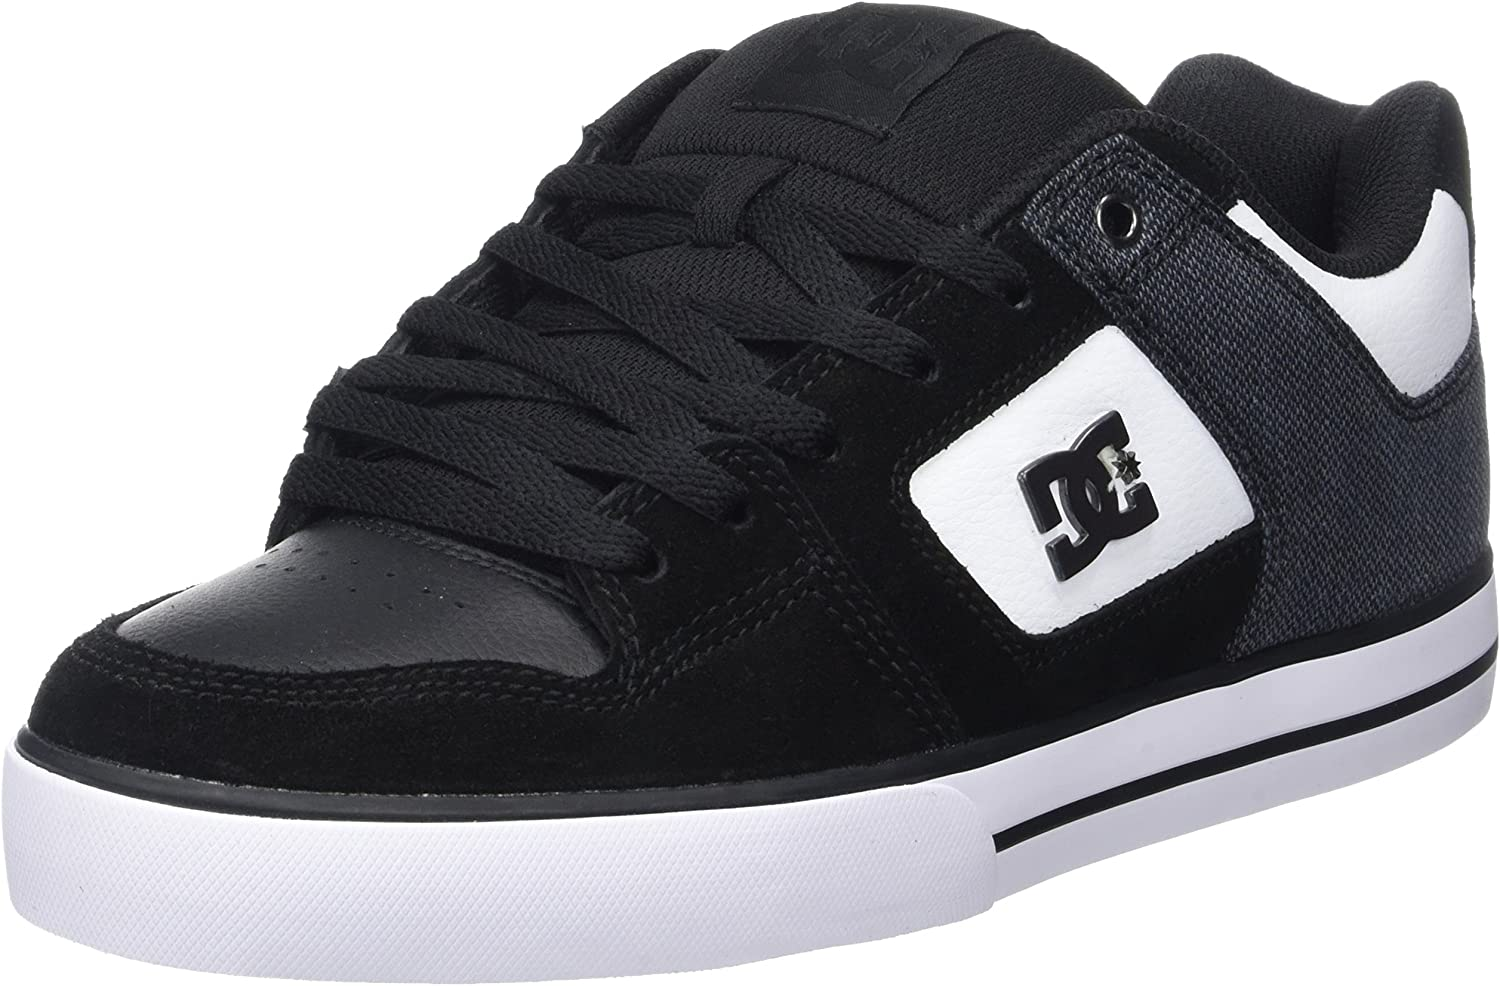 DC shoes Pure Se, Men's Low